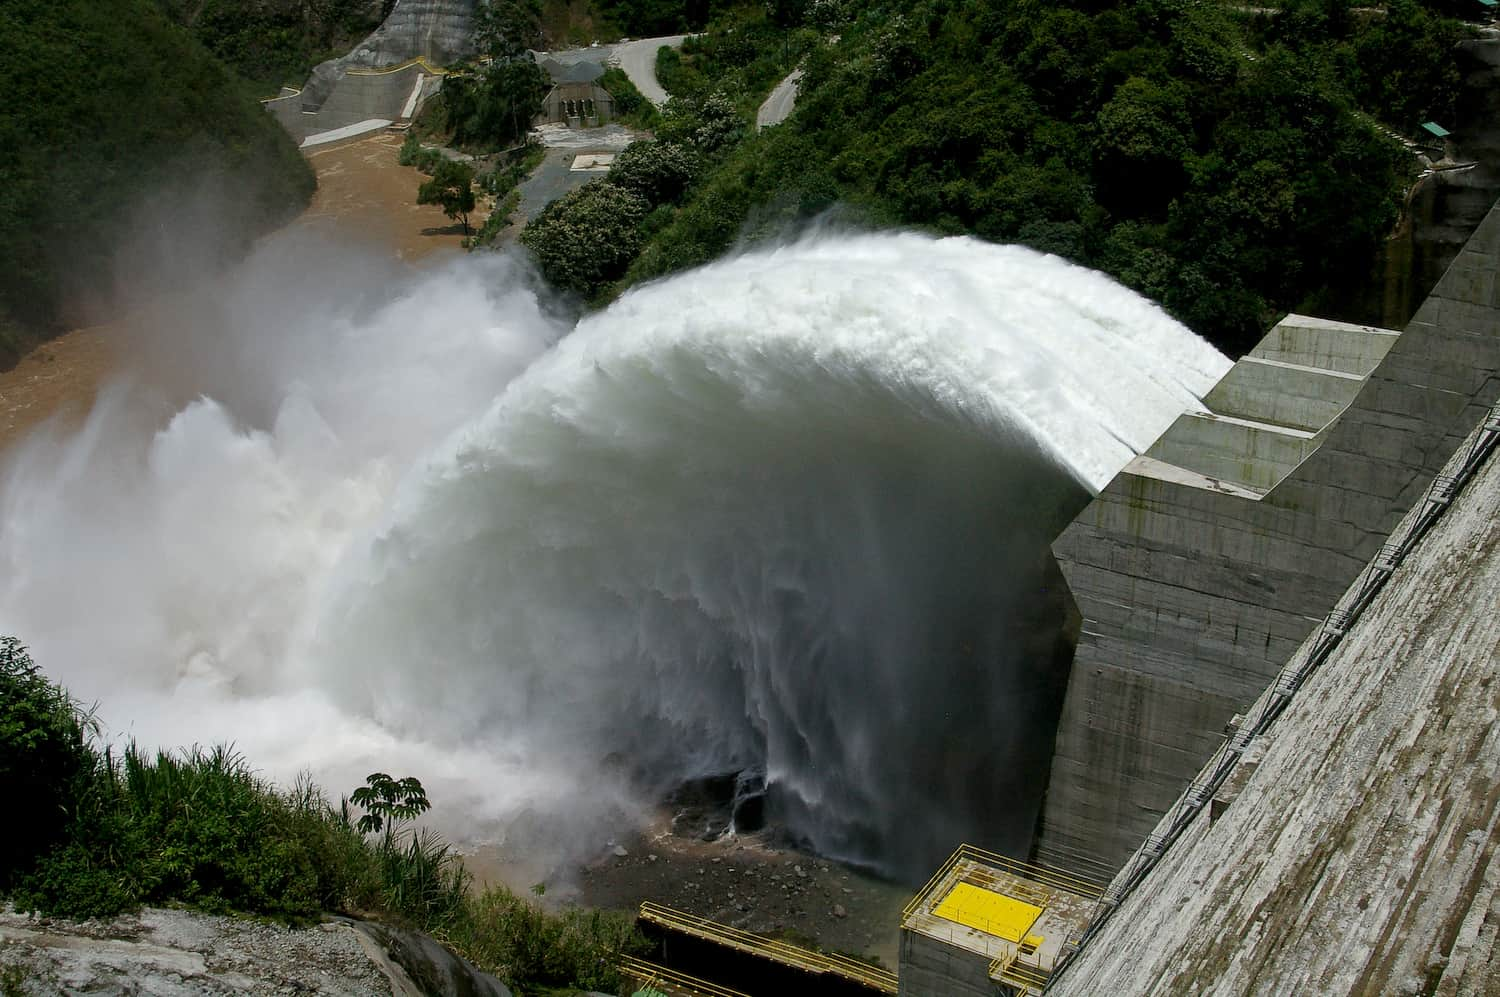 Costa Rica S Renewable Energy Streak Is Still Going But What Does That Really Mean The Tico